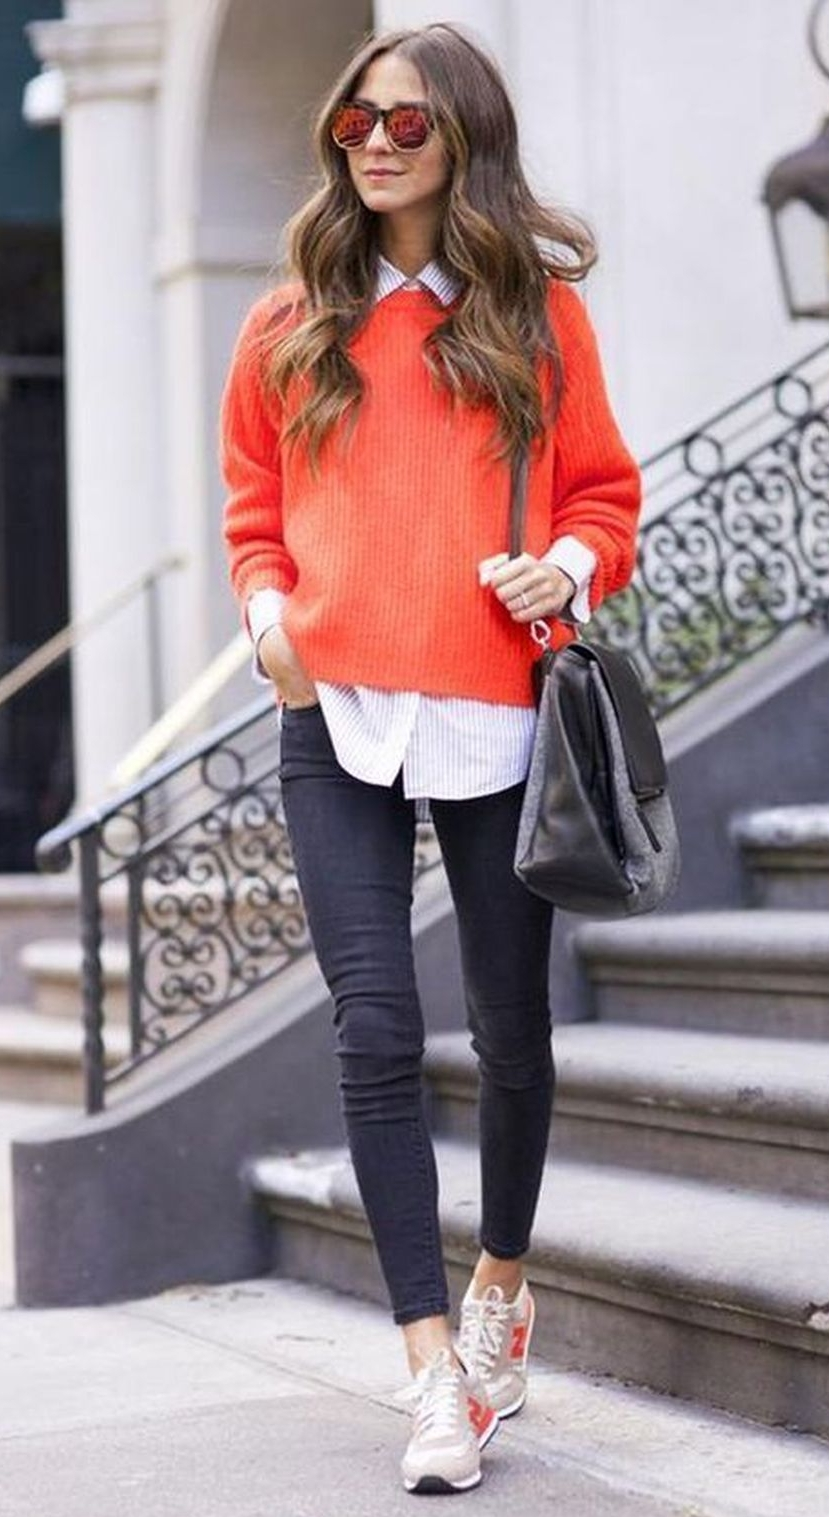 what to wear with a red pullover : white shirt + bag + skinny jeans + sneakers